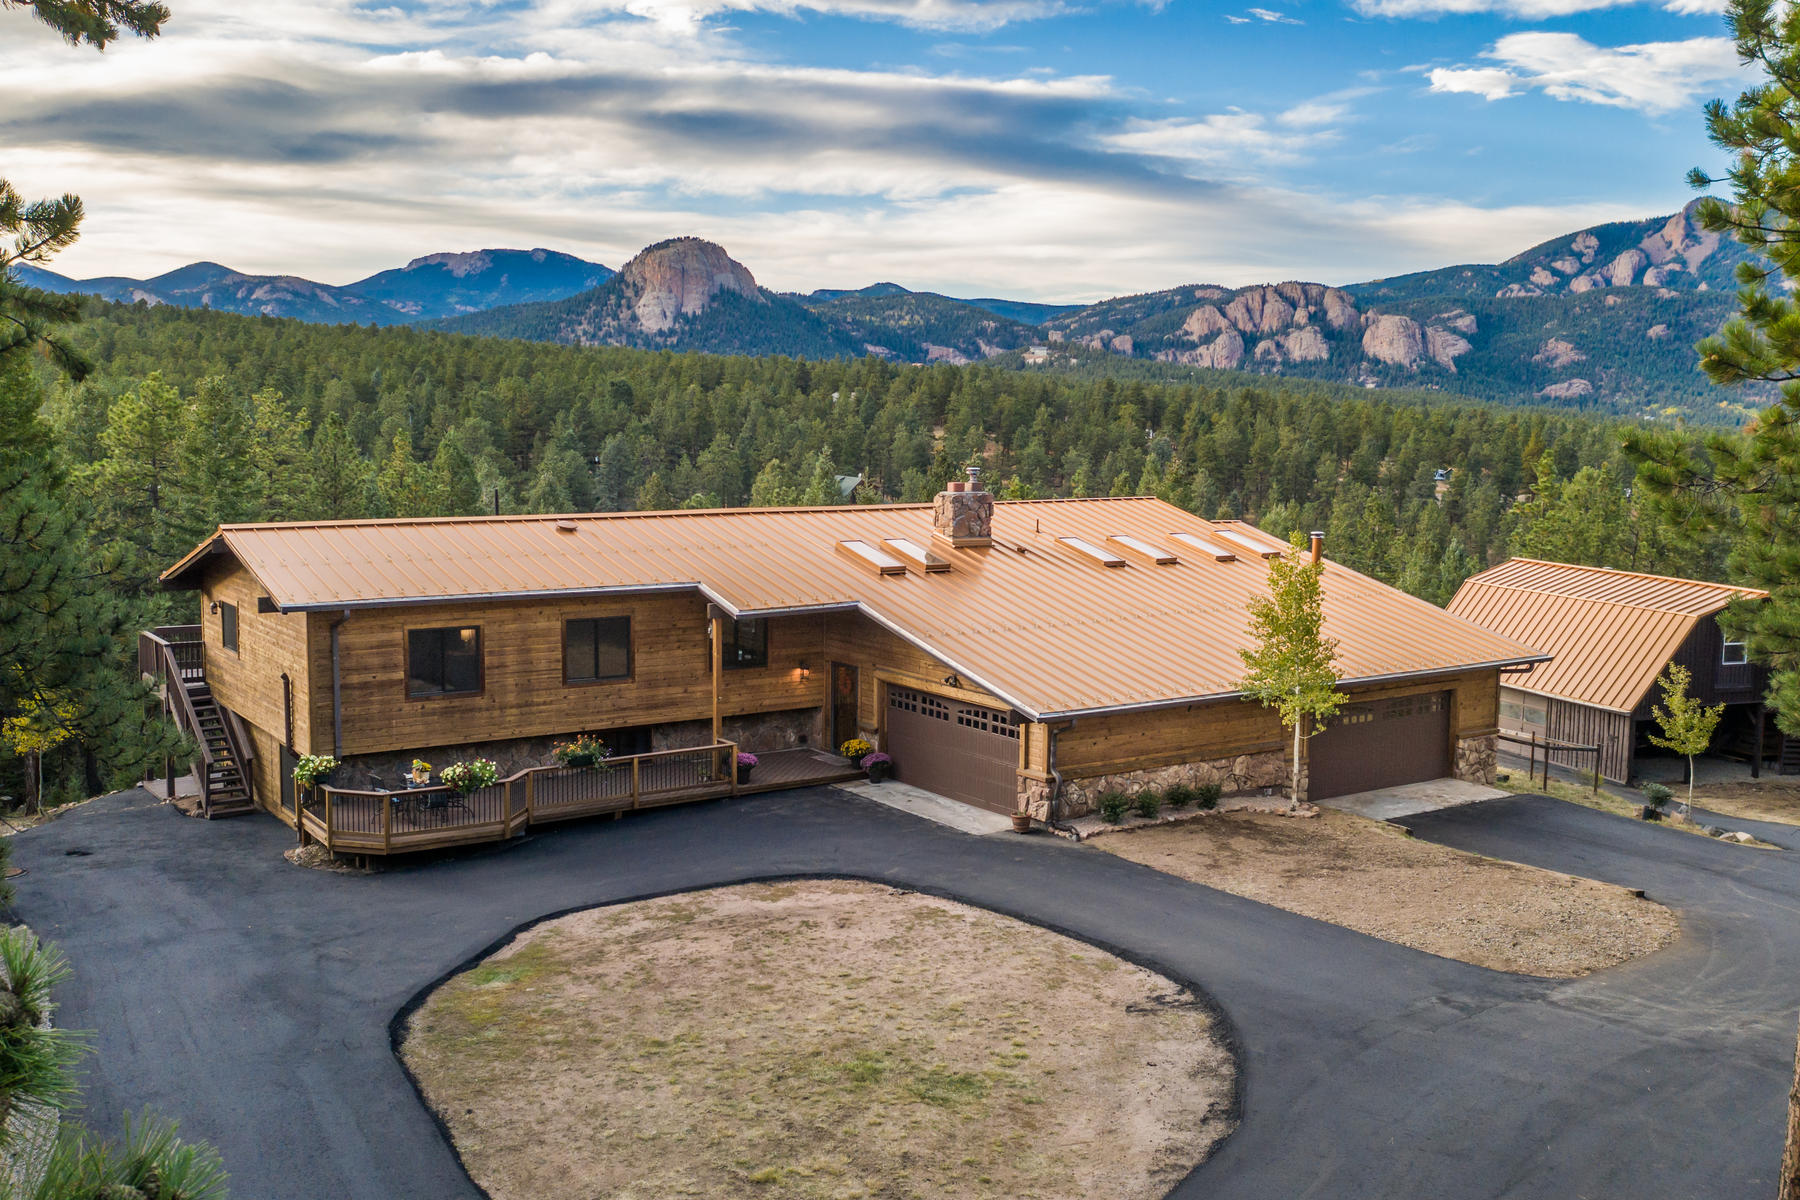 Single Family Homes for Sale at Immaculately Maintained with Beautiful Mountain Views 2973 Nova Road Pine, Colorado 80470 United States